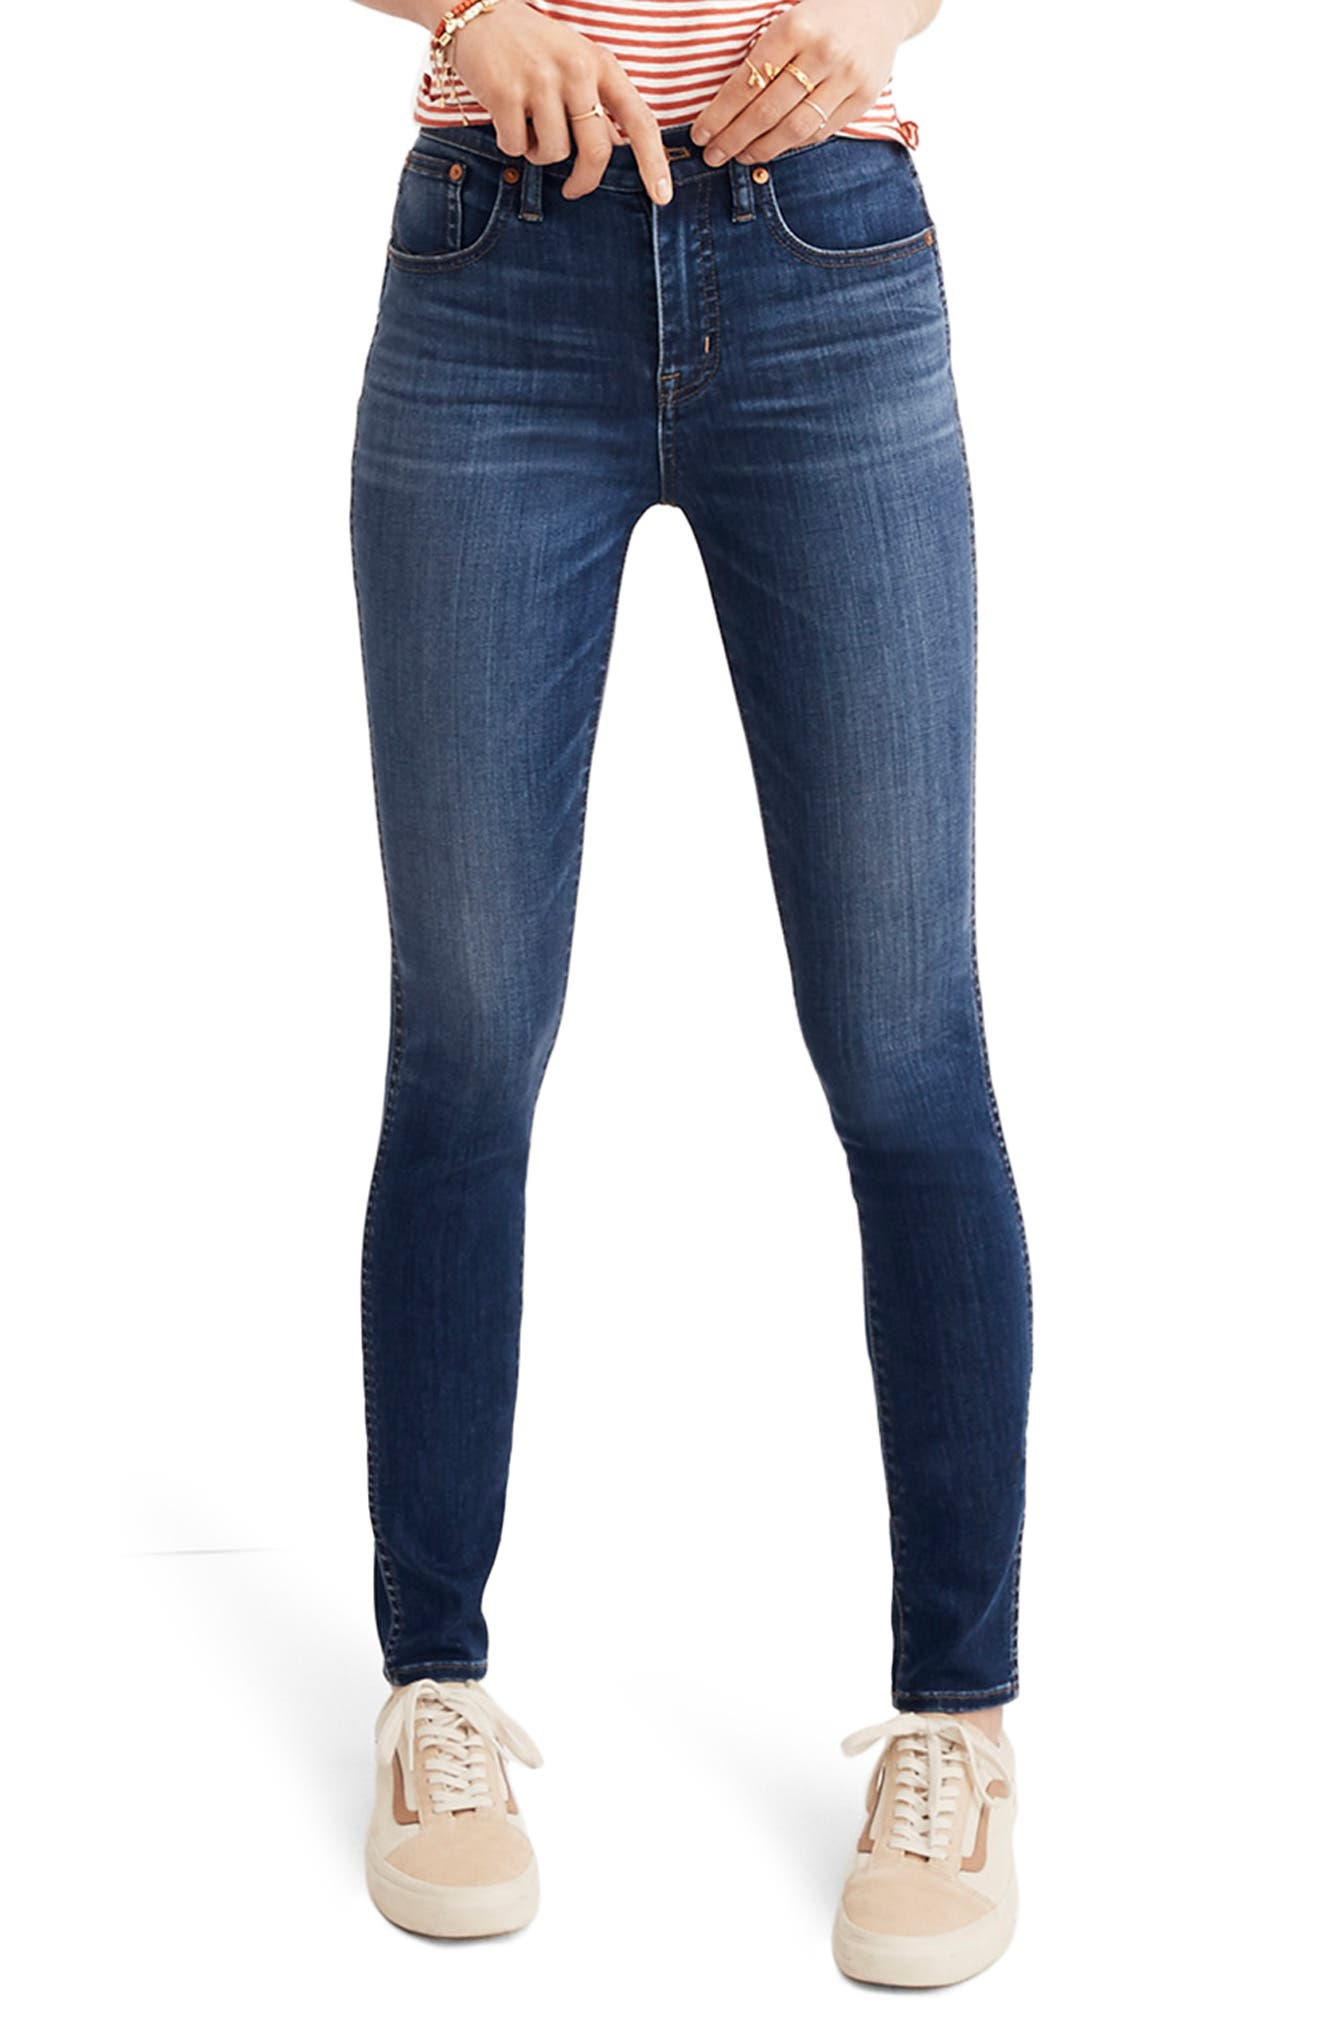 10-Inch High Rise Skinny Jeans,                             Main thumbnail 1, color,                             DANNY